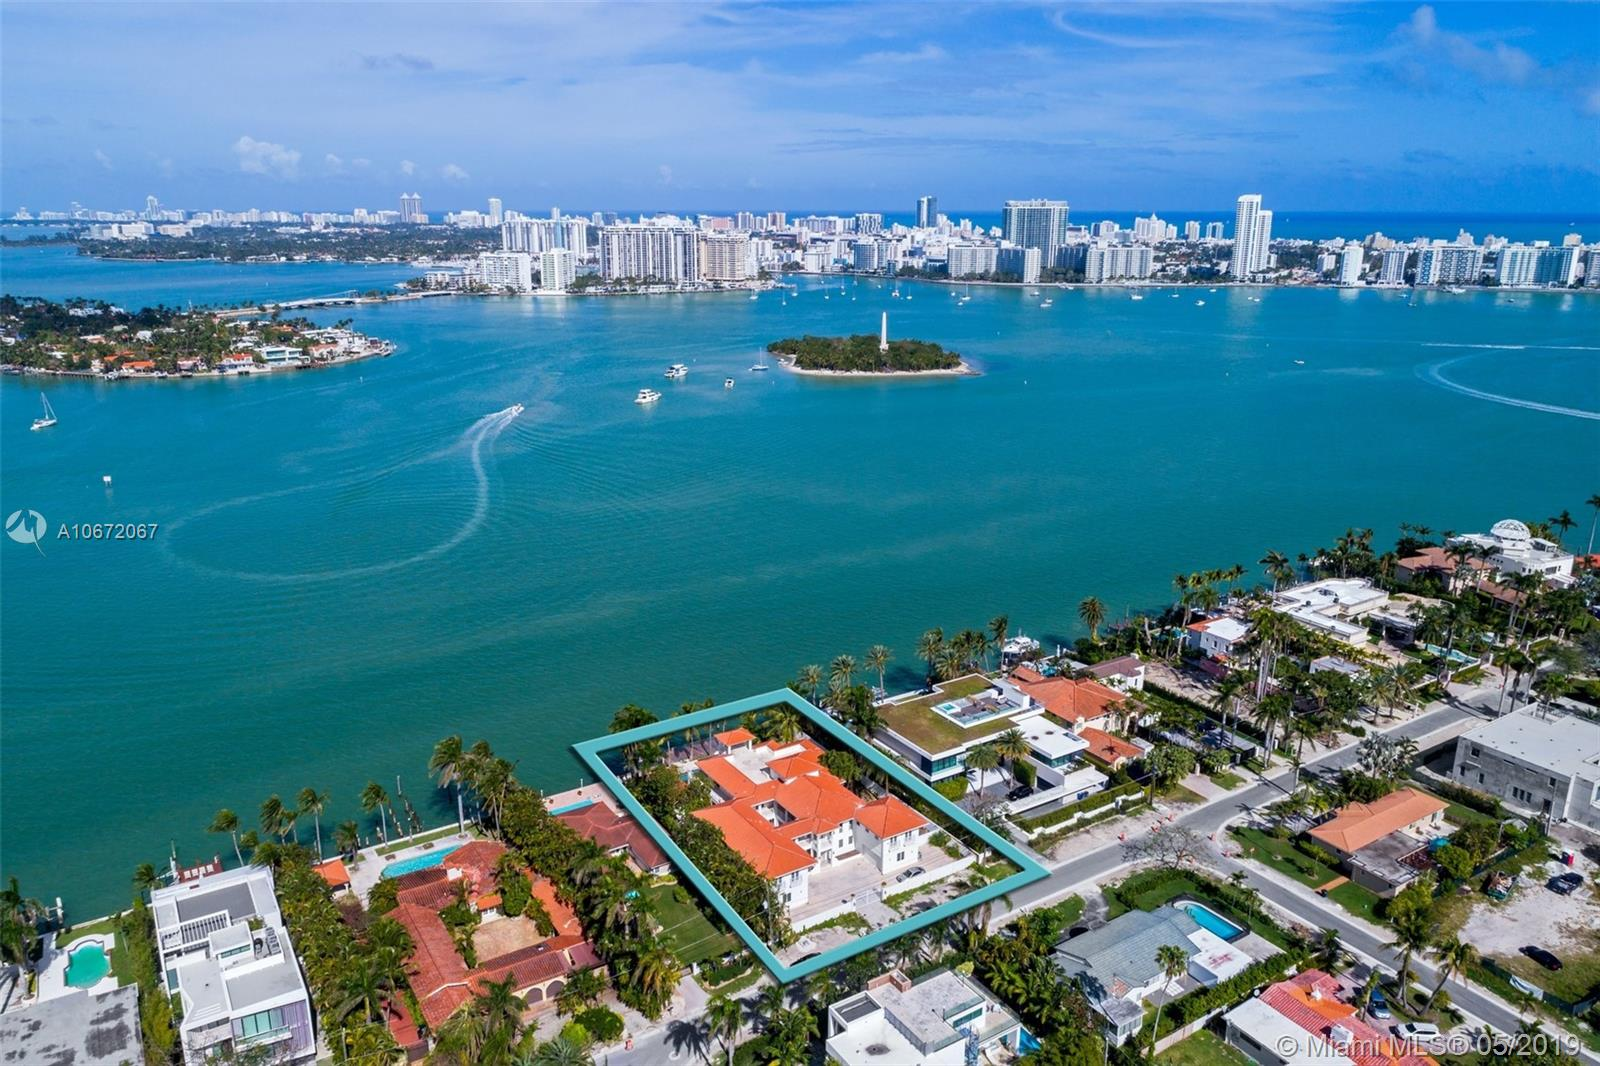 Situated on an oversized 21,000 SF lot with unobstructed wide open bay views and 120 ft of water frontage, this home on the prestigious and guard gated Hibiscus Island has great potential. With 16,170 total sqft, this home features panoramic views throughout, 7 bedrooms, 9 + 1 bathrooms, large pool, spacious backyard, and private dock with boat lift. Live in the heart of Miami Beach in close proximity to world class restaurants, shopping and beaches of South Beach, Downtown and Wynwood.  For knockdown value; property contains building that currently requires substantial renovation to get new certificate of occupancy.